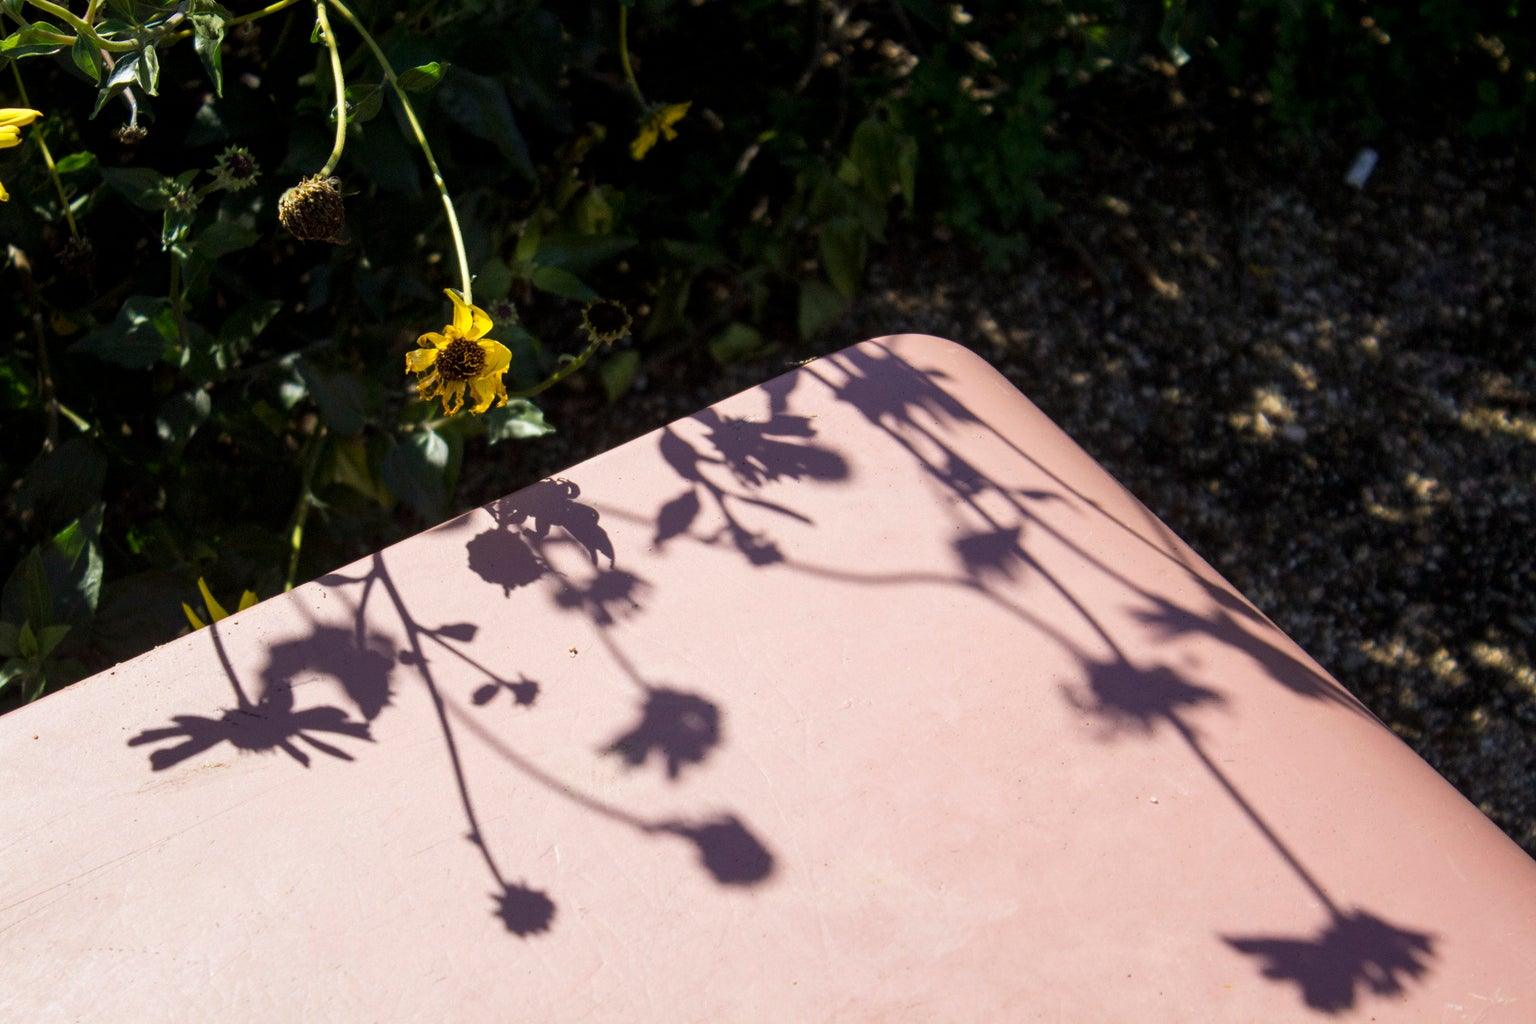 Floral Sunflower Shadows Outdoor Reflective Plants High Res Version